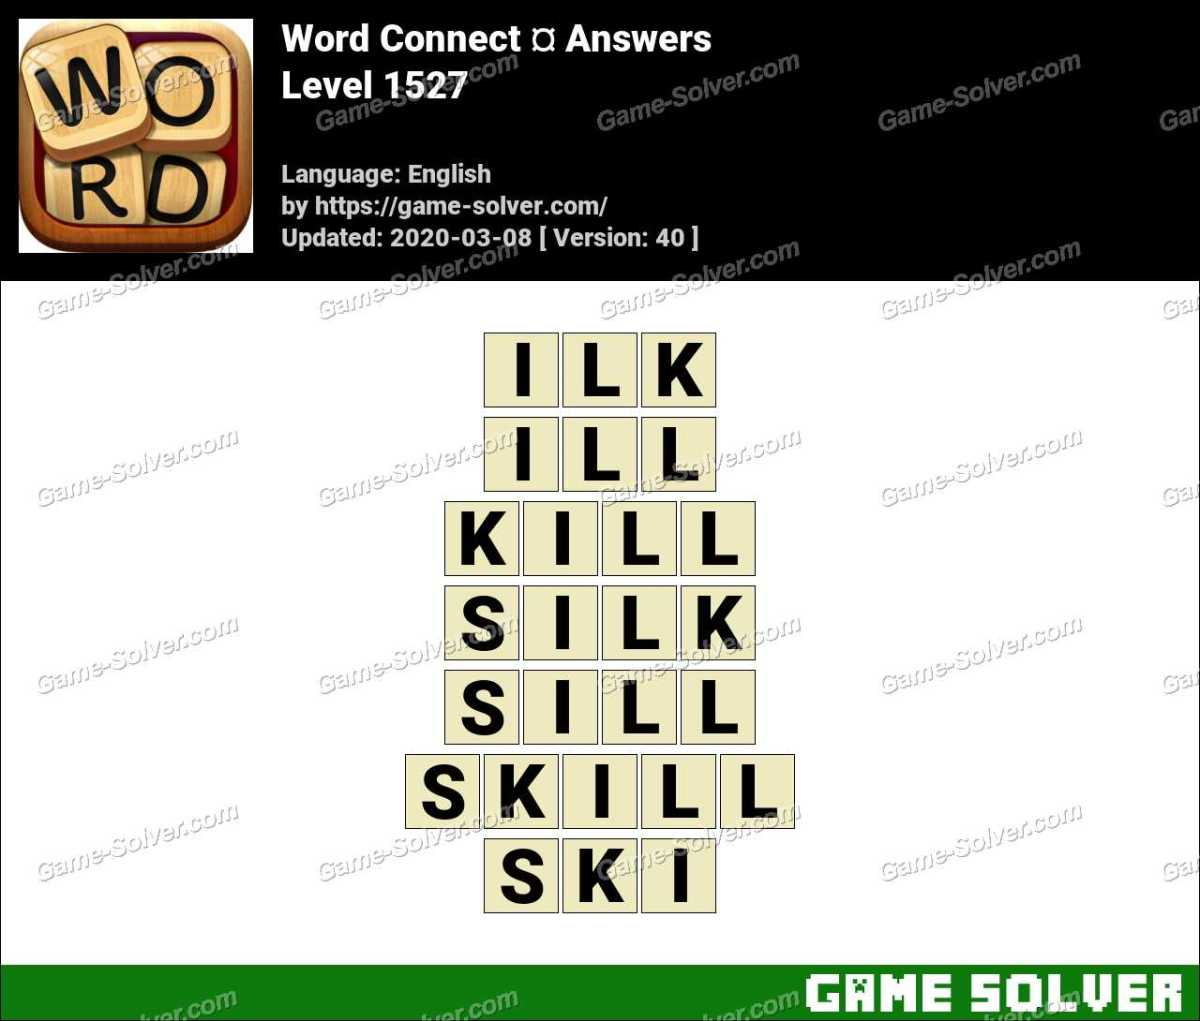 Word Connect Level 1527 Answers